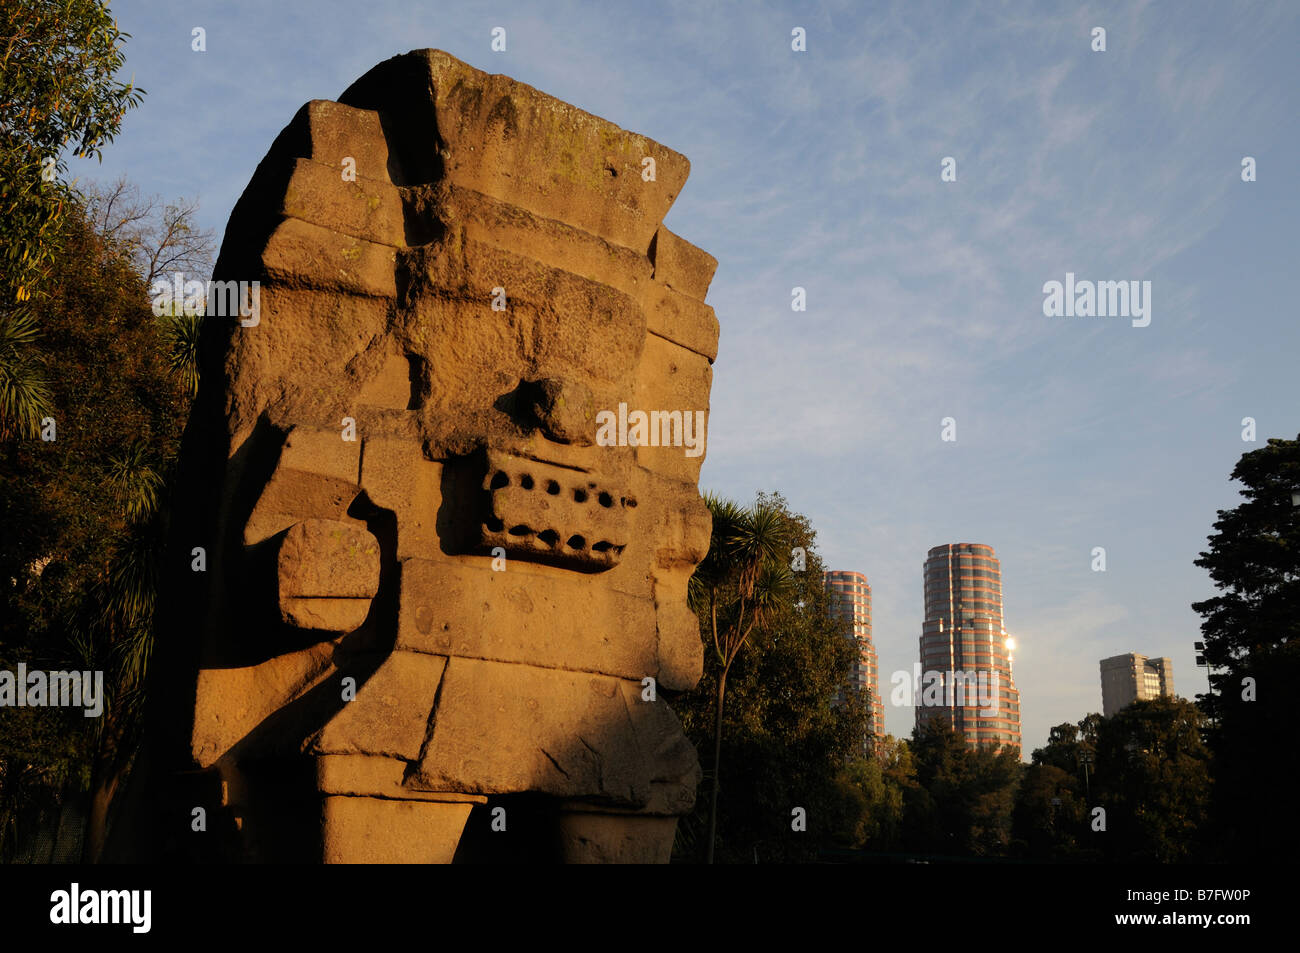 Statue of rain god Tlaloc in front of Anthropological museum, Mexico City - Stock Image